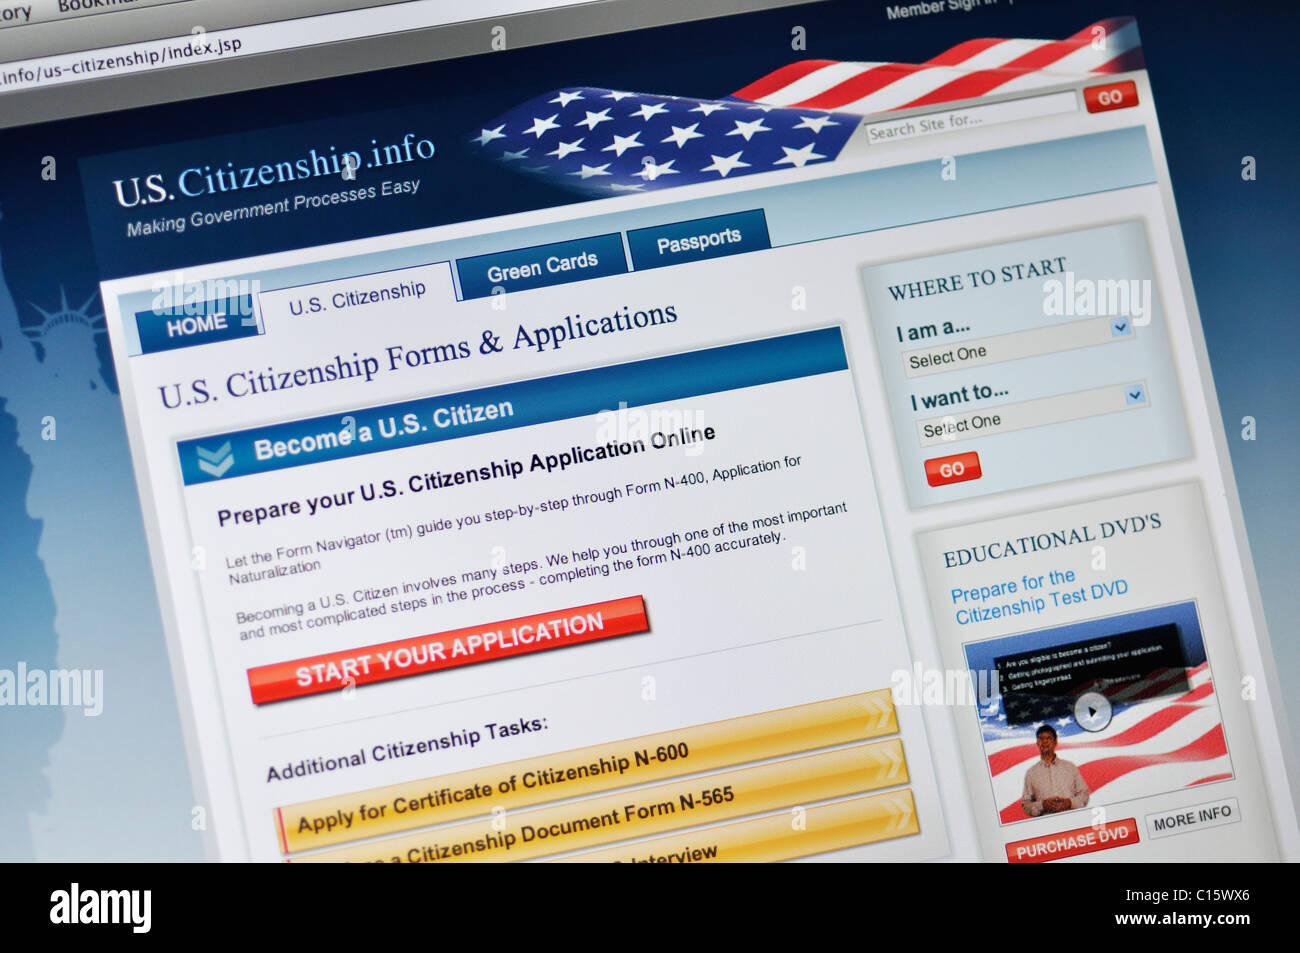 Department of Homeland Security, US Citizenship and Immigration Services, application - Stock Image